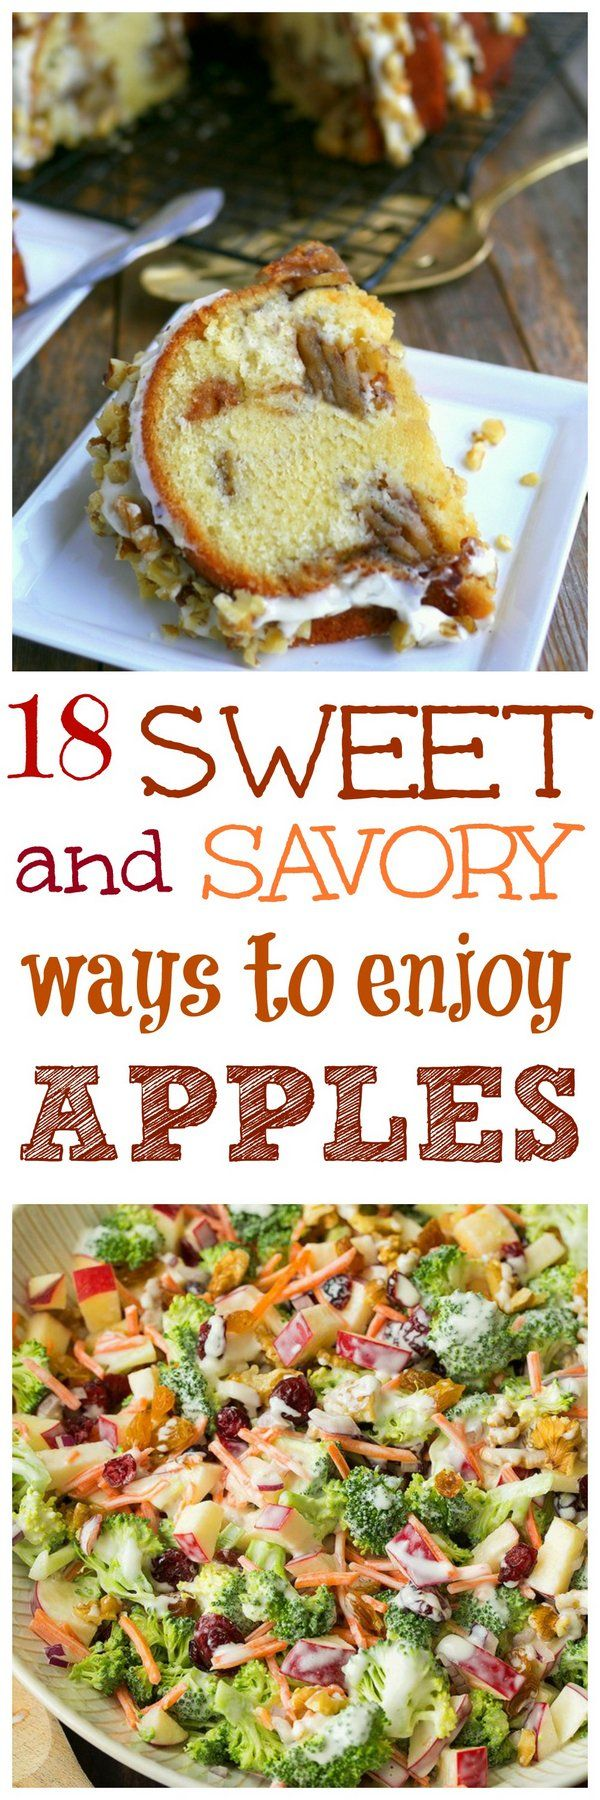 18 Sweet and Savory Ways to Enjoy Apples